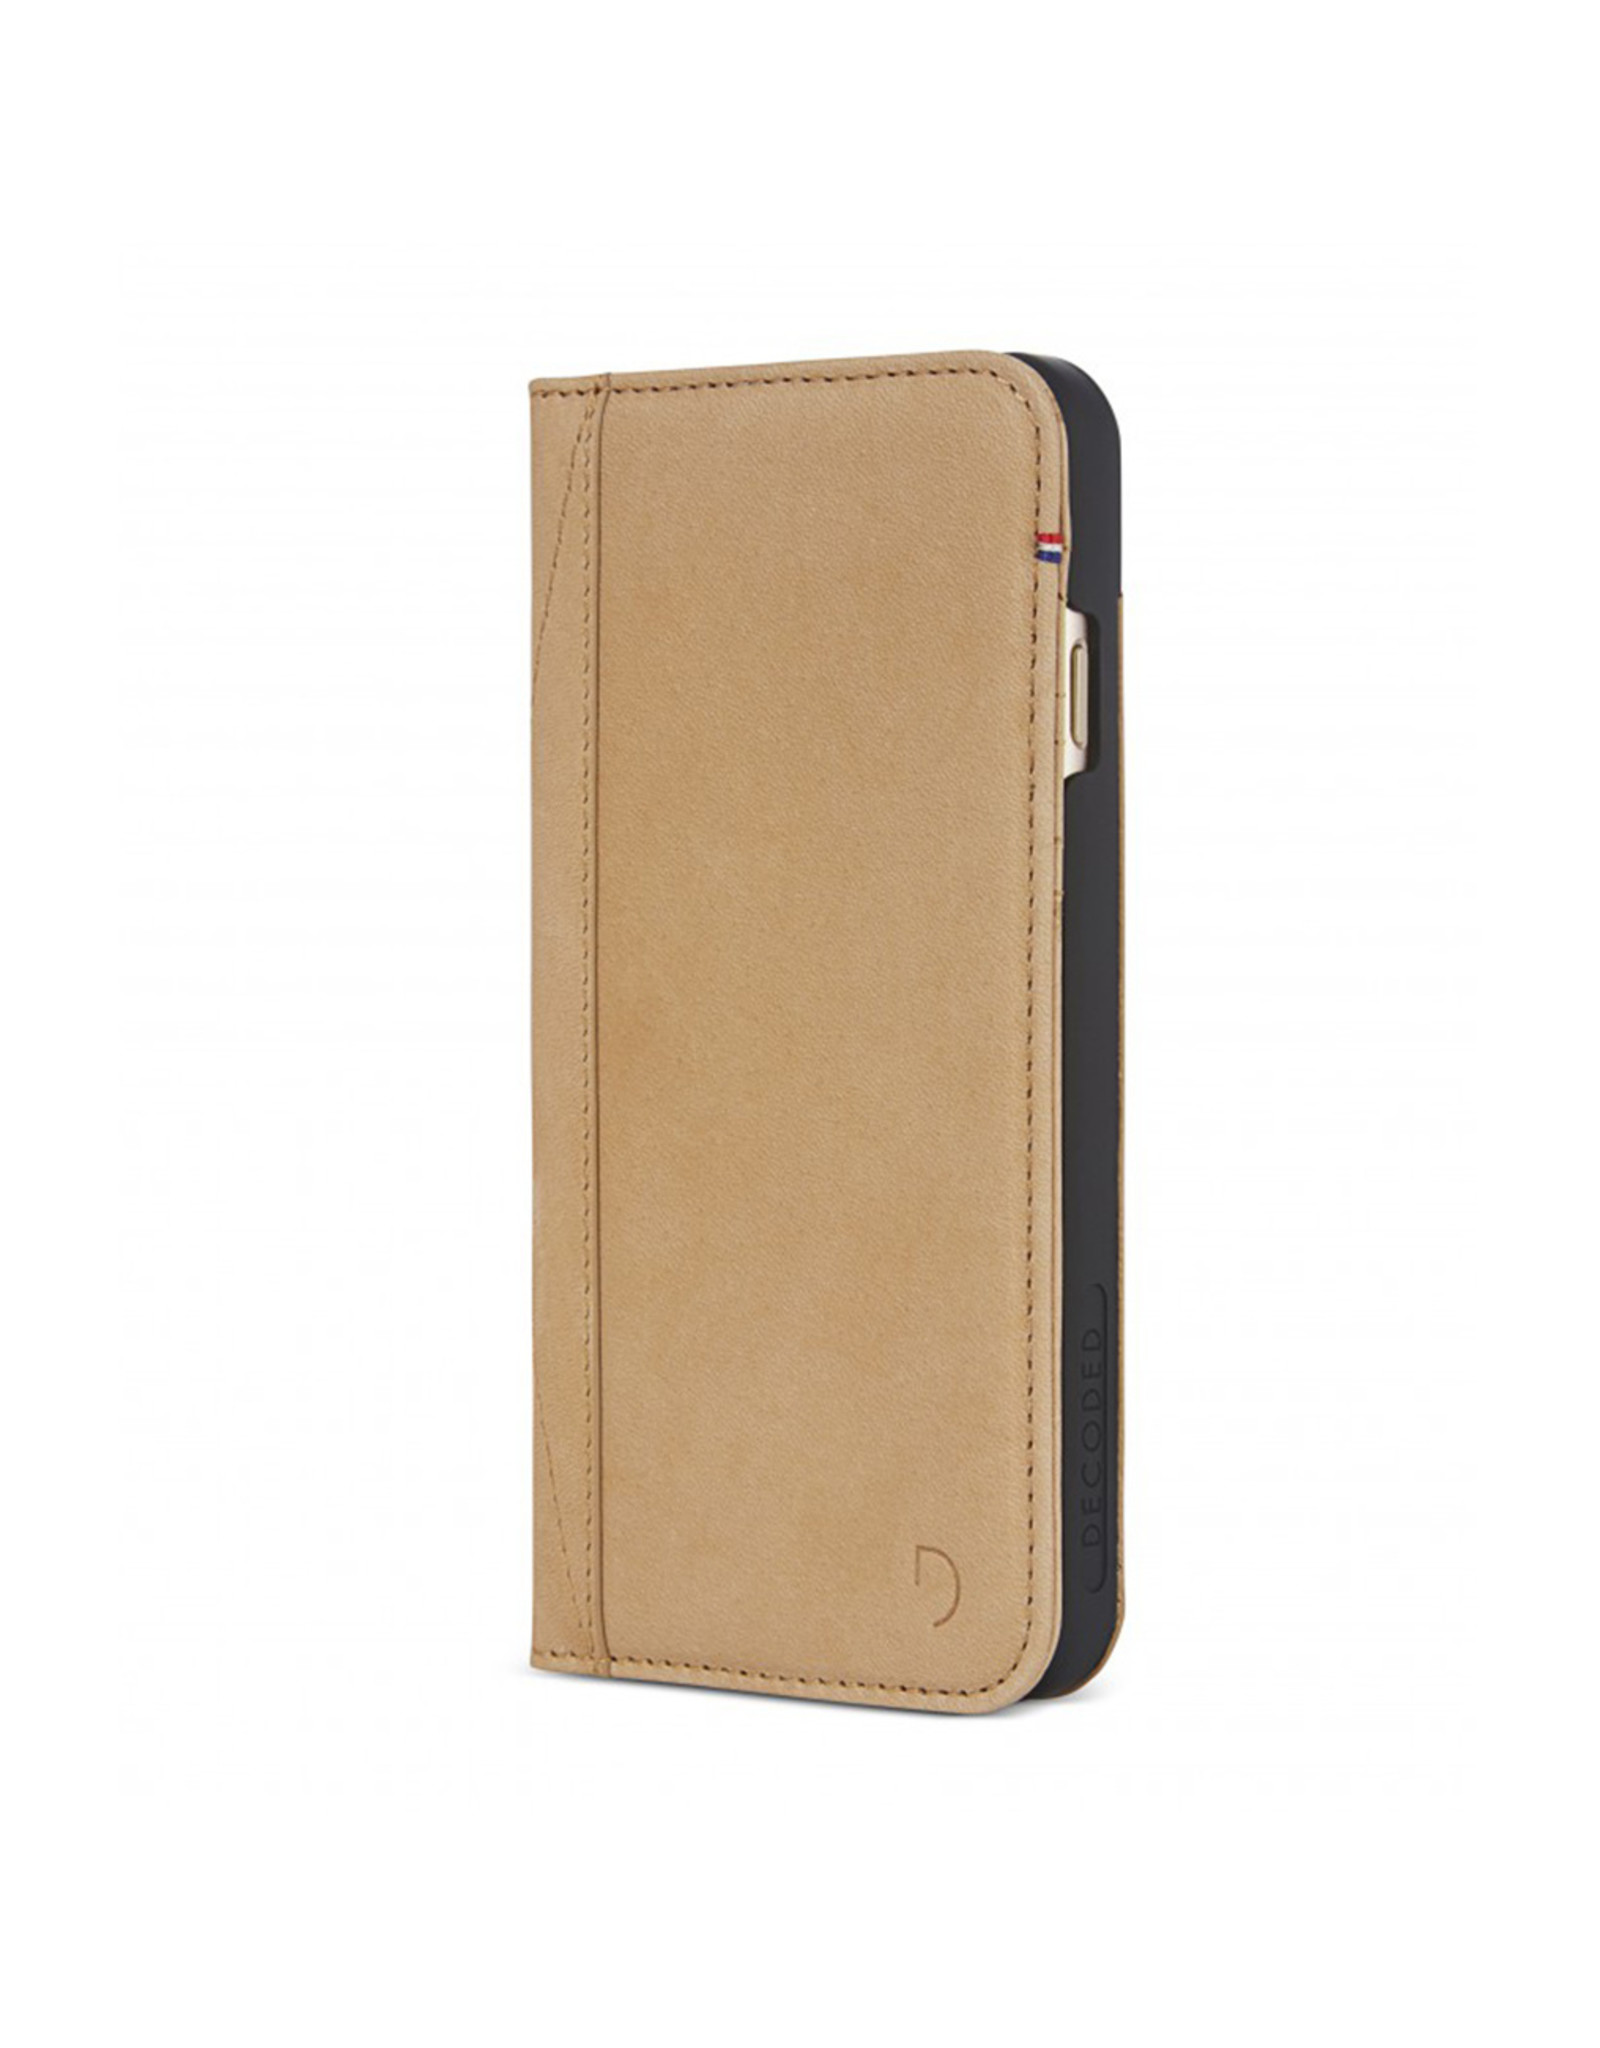 Decoded Leather Wallet Case for iP8/7/6s/6  Sahara DC-DA6IPO7CW3SA